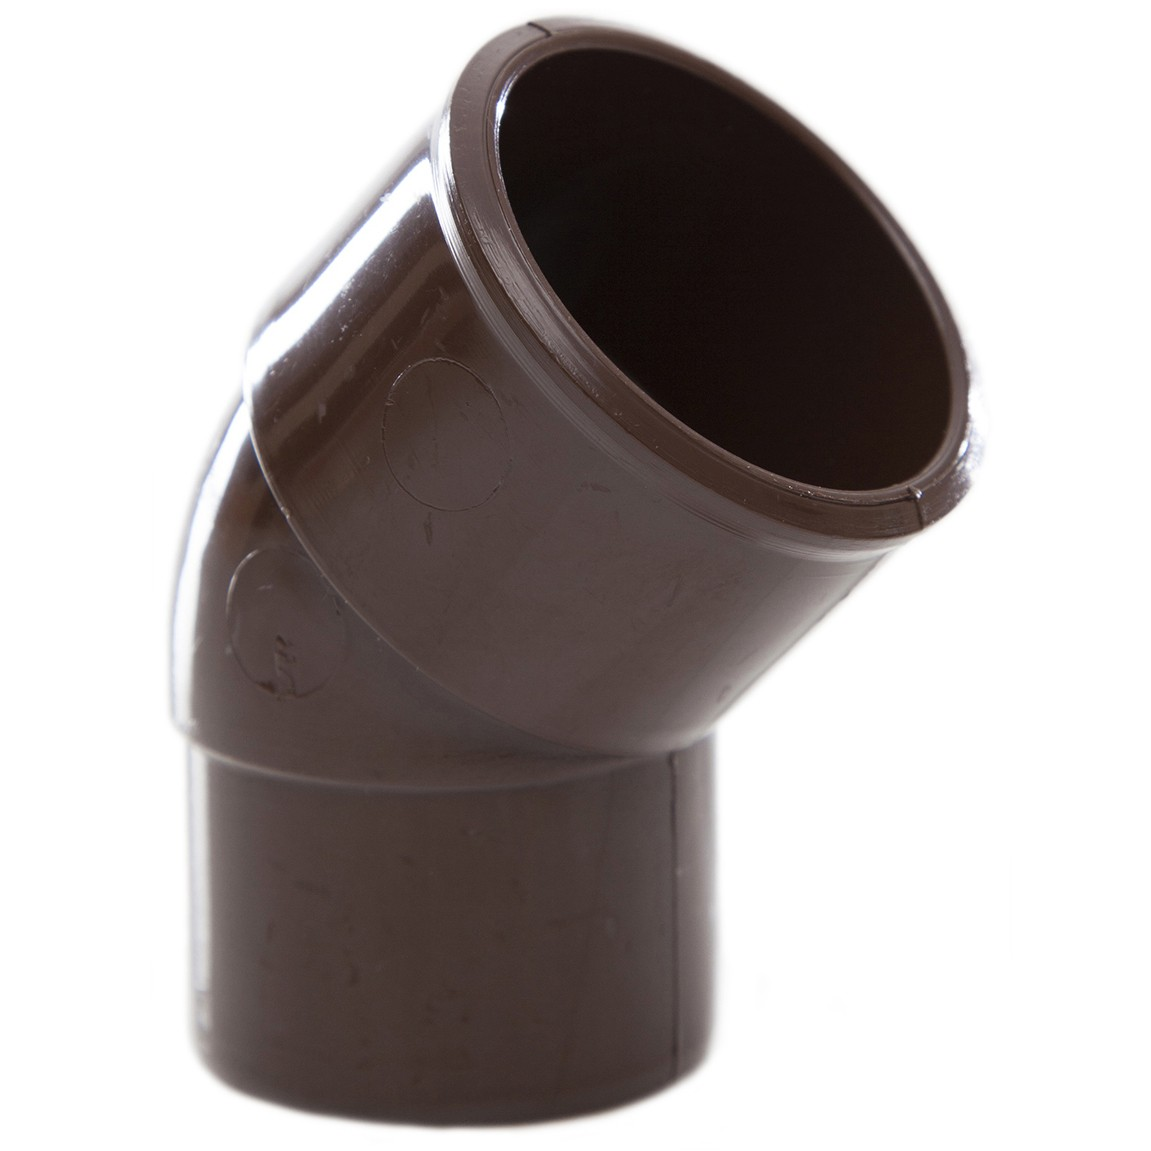 Polypipe 32mm Solvent Weld Waste 45 Degree Spigot Bend - Brown